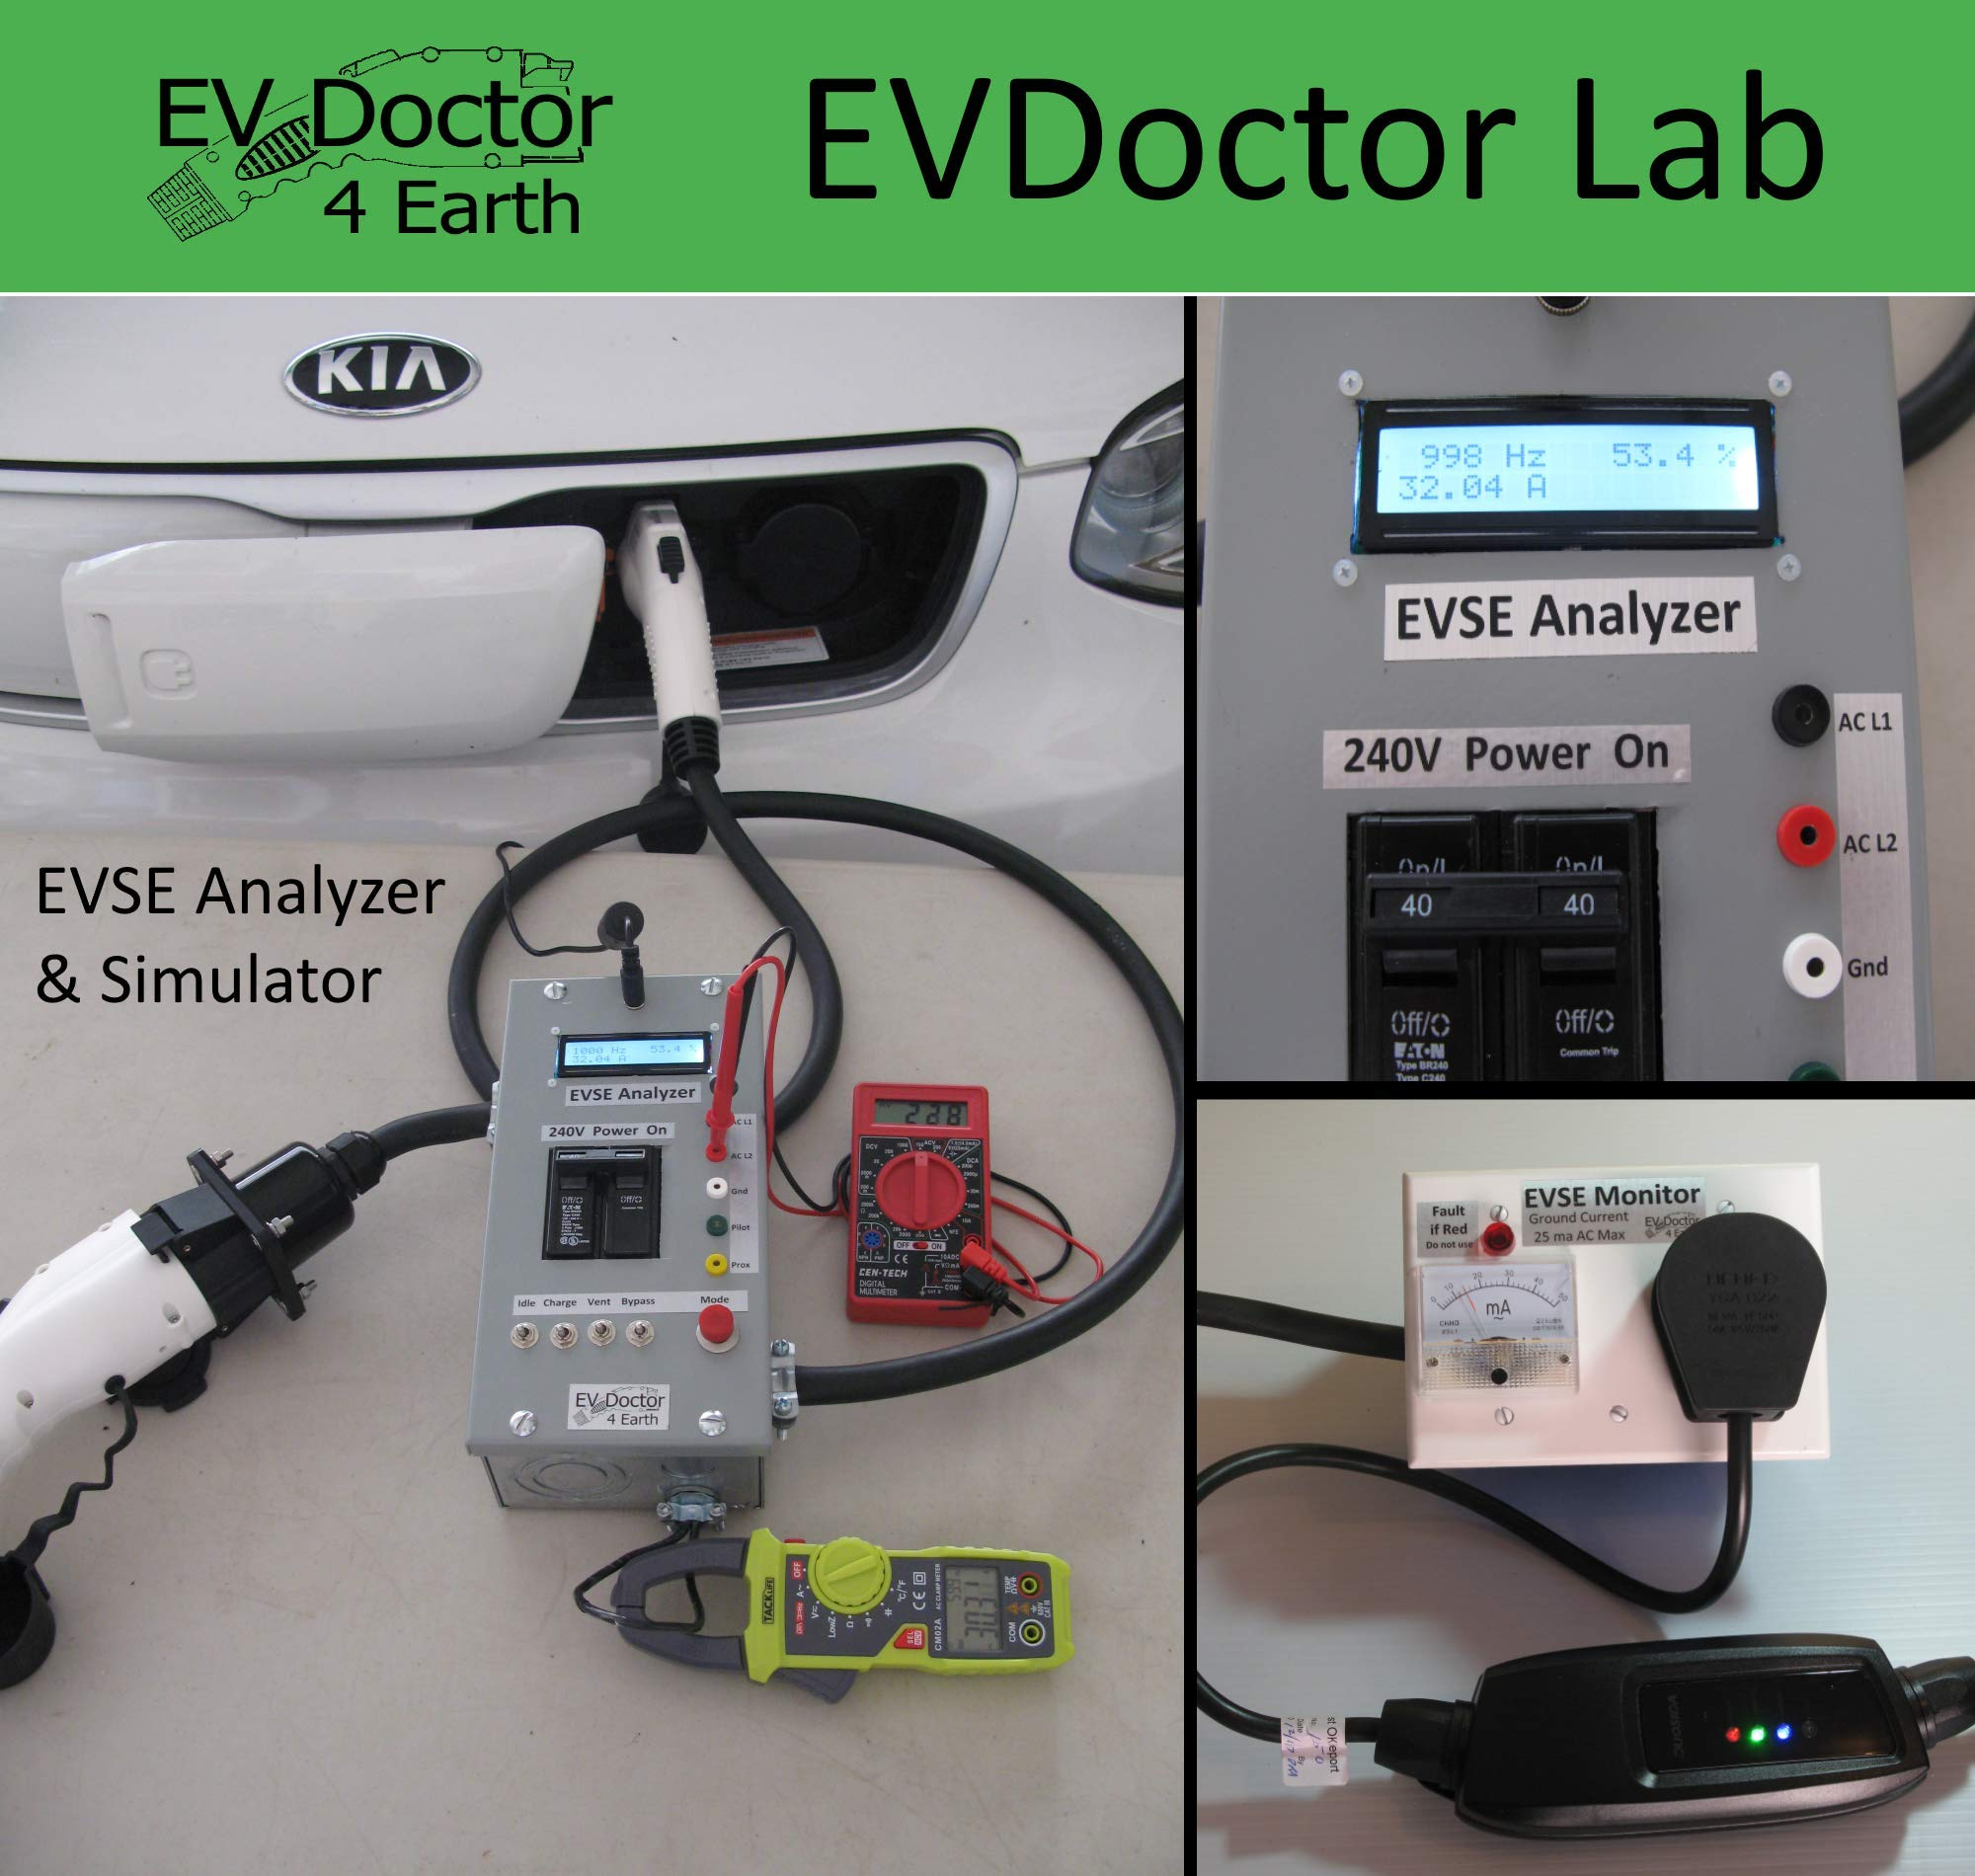 EVSE Repair- Level 1 Level 2 Electric Vehicle Car Charger -  Low Flat Rate, Fast Turn-Around, Low Cost loaner Available, Detailed Test and Safety Report Included. See Return Shipping Cost Below